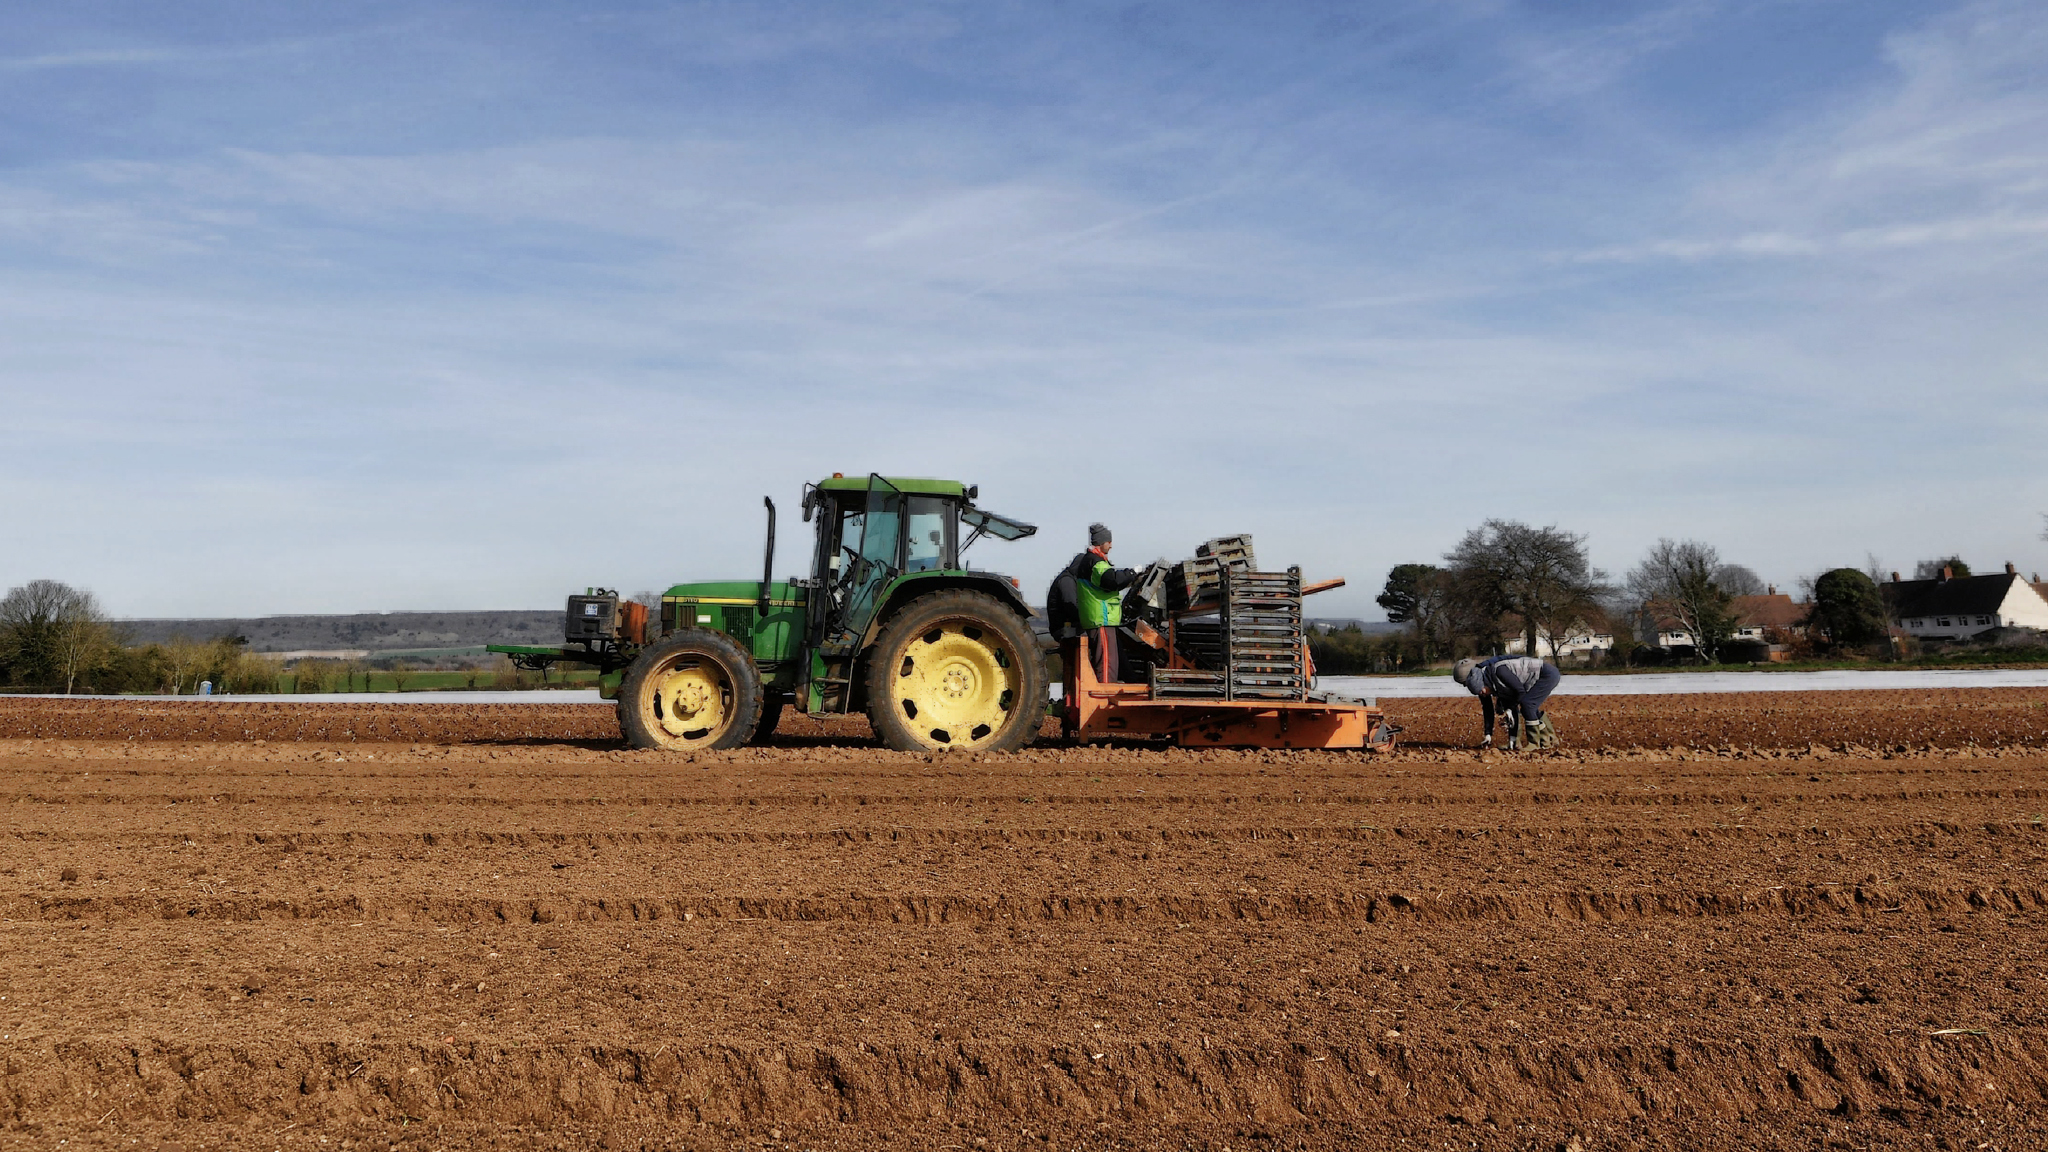 Brexit and agriculture: British farmers to plough new course